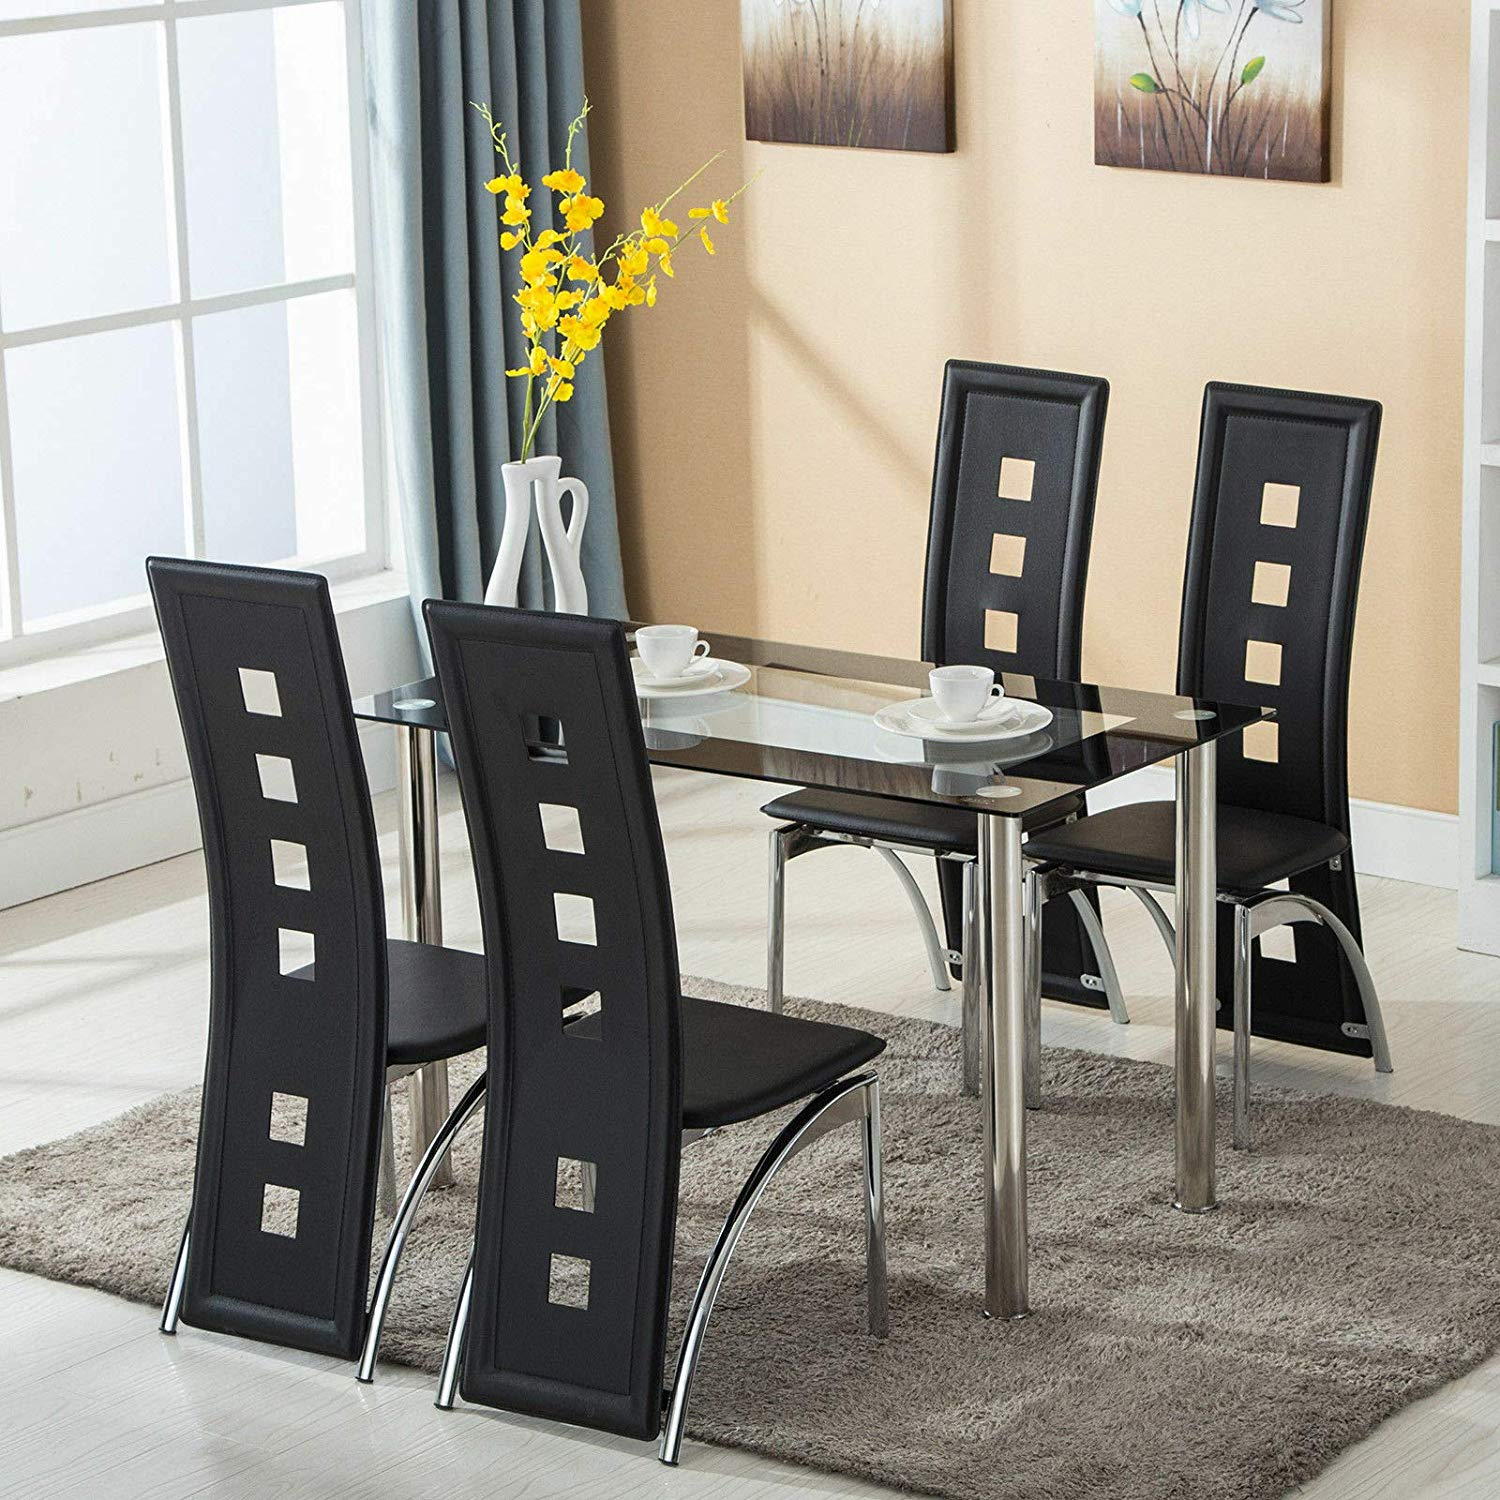 Modern 9 Piece Dining Table Set Tempered Glass Transparent Dining Table  with 9pcs Chairs Room Kitchen Breakfast Furniture 9cm Unique Design Home  ...